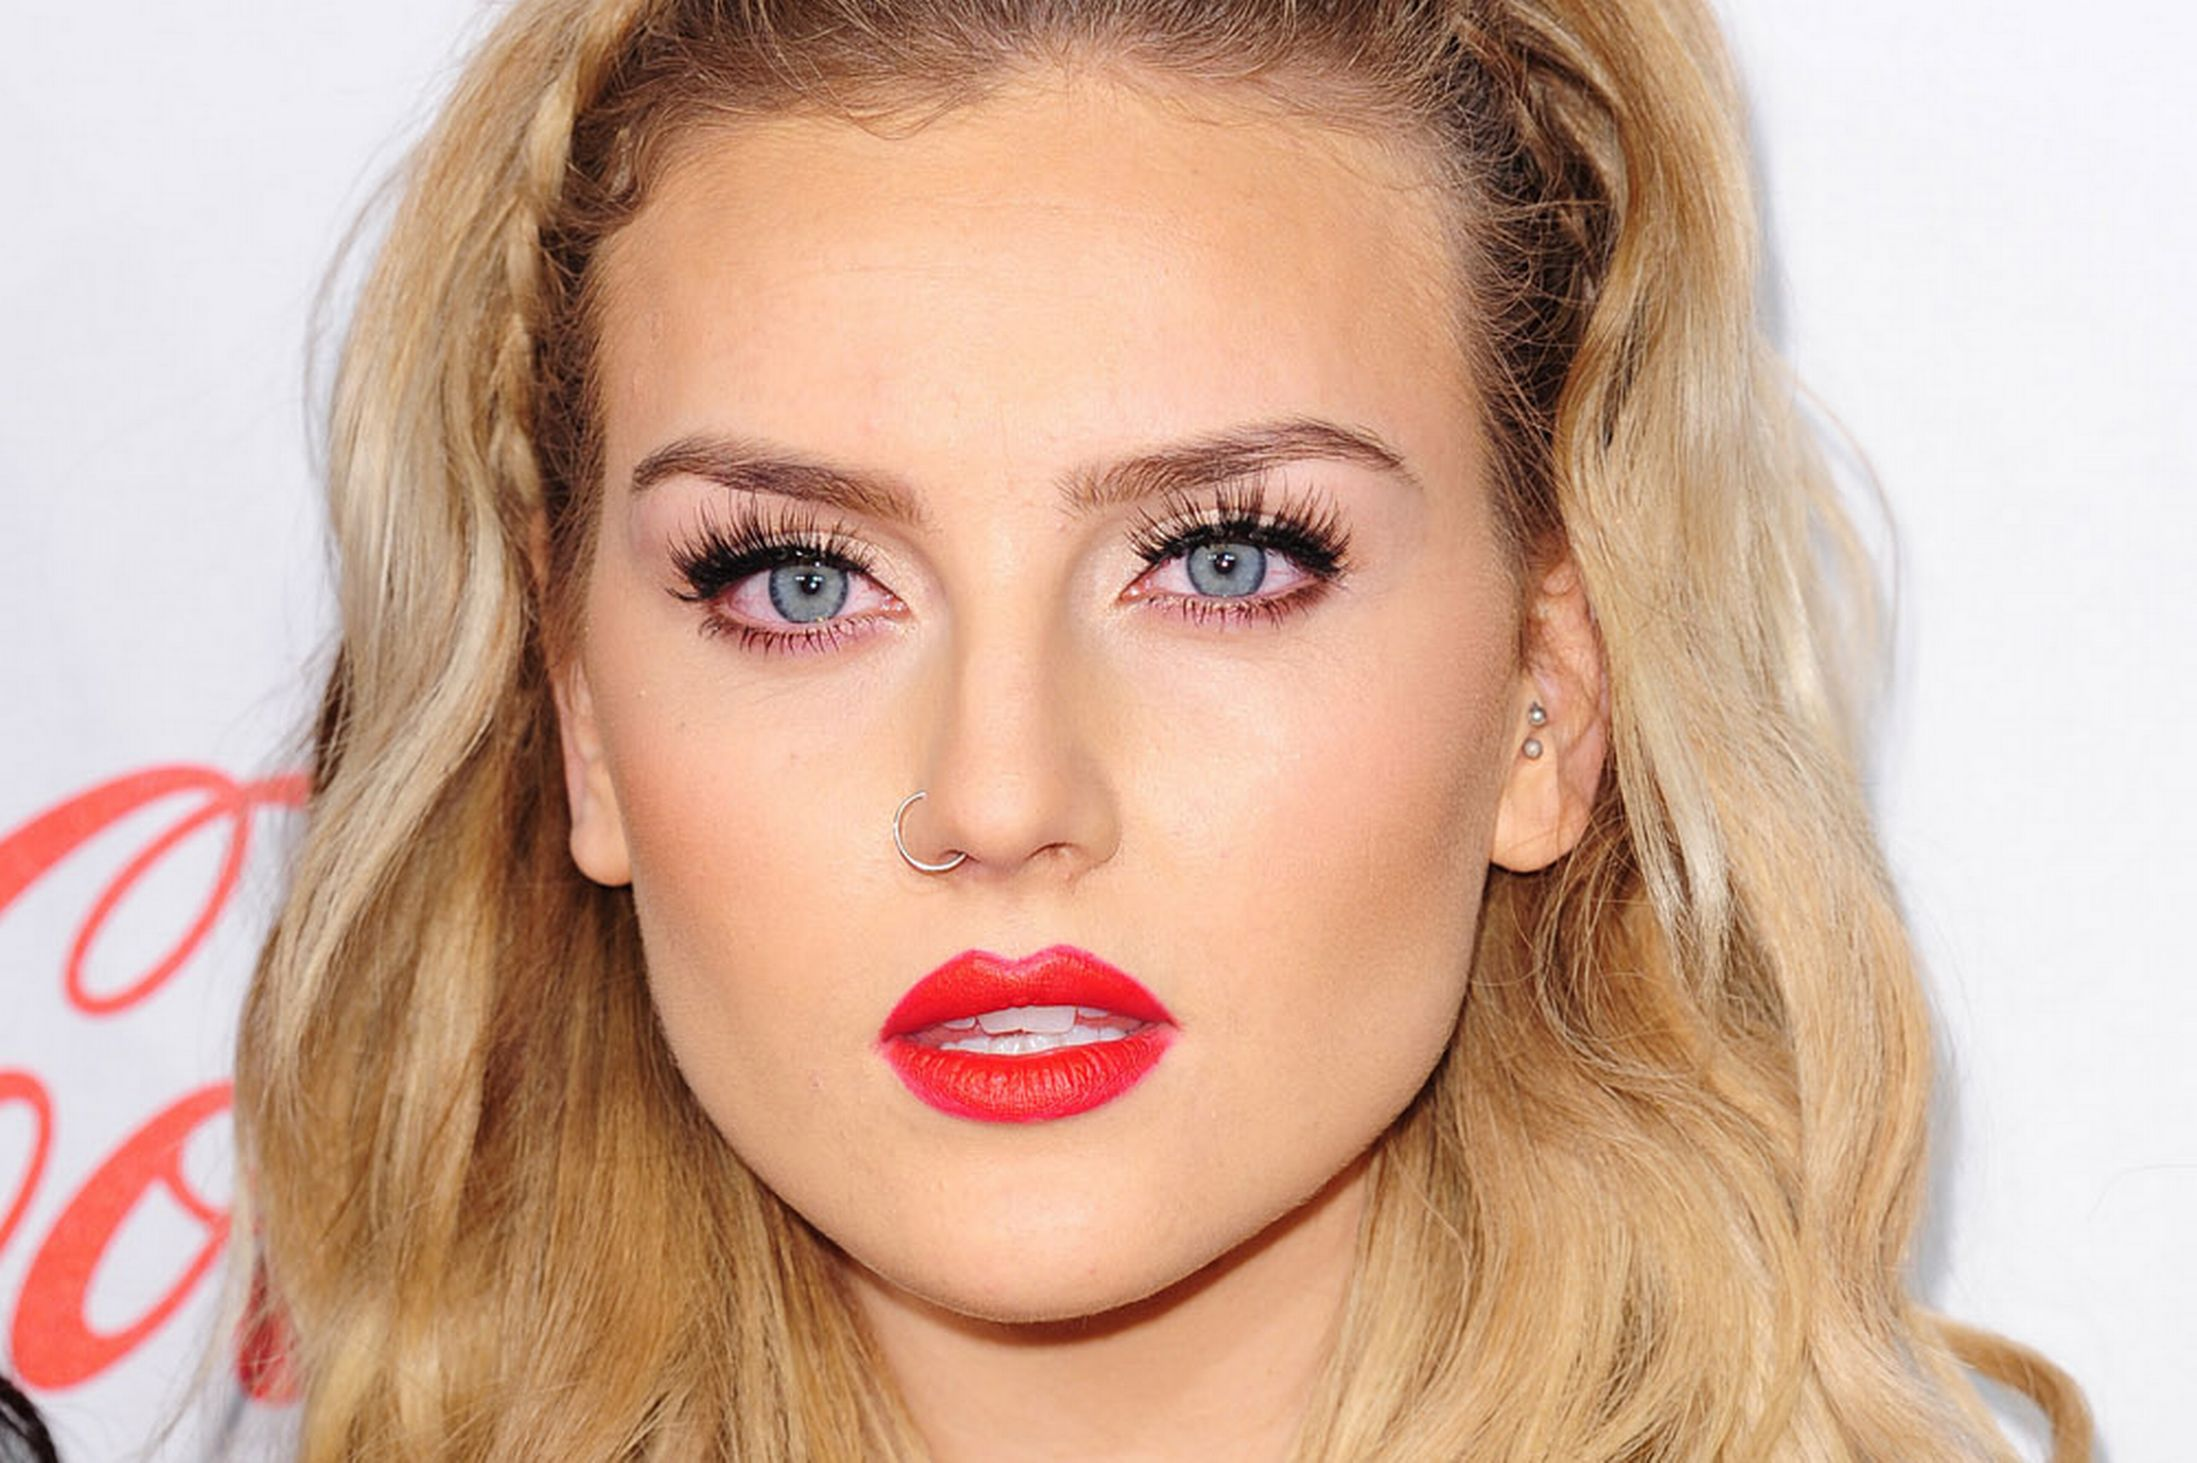 Perrie Edwards Wallpapers Images Photos Pictures Backgrounds